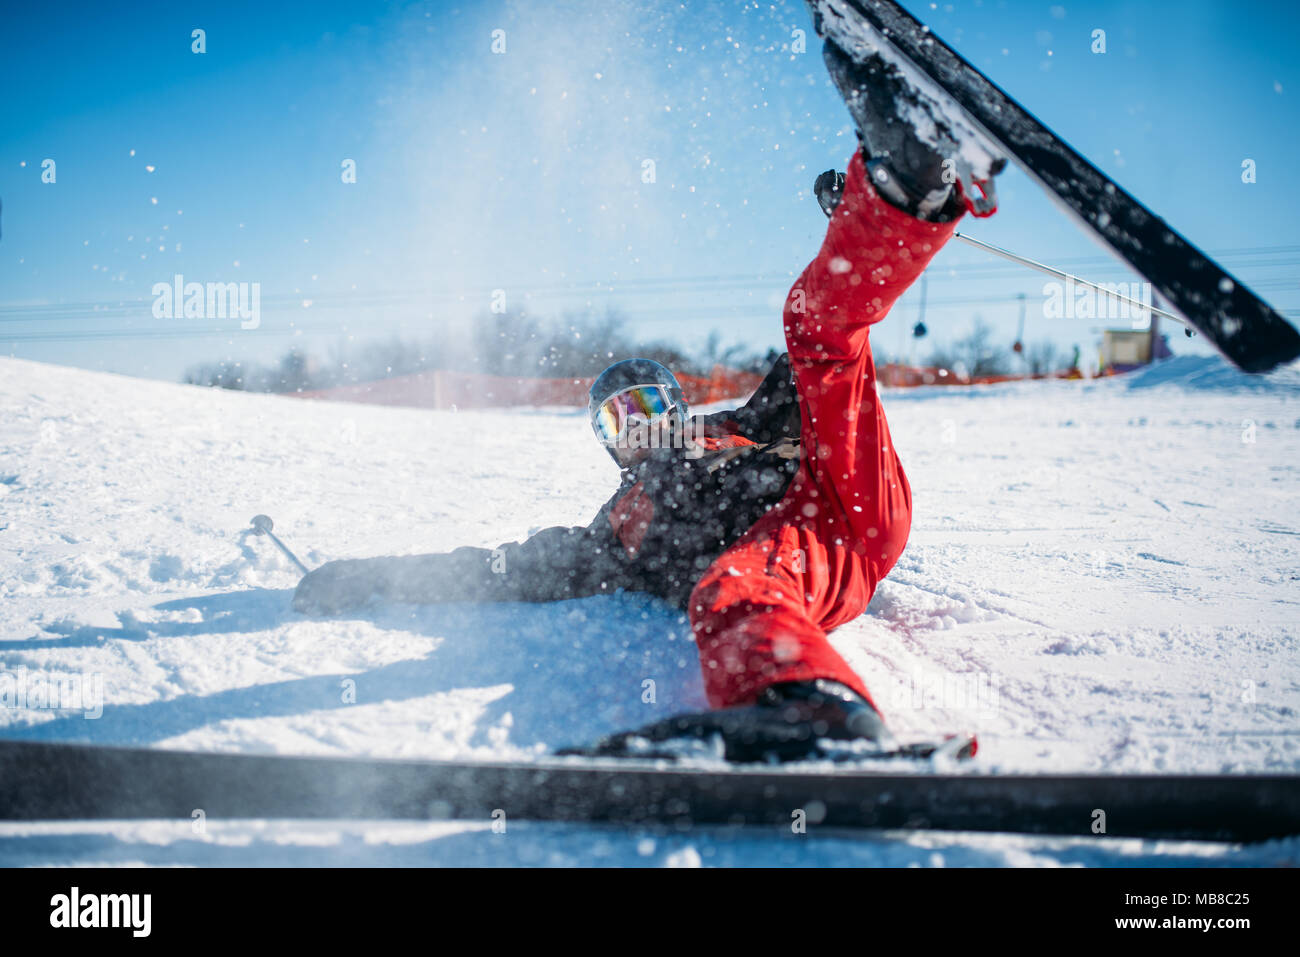 Skier in helmet and glasses lies on snowy mountain. Winter active sport, extreme lifestyle. Downhill skiing - Stock Image